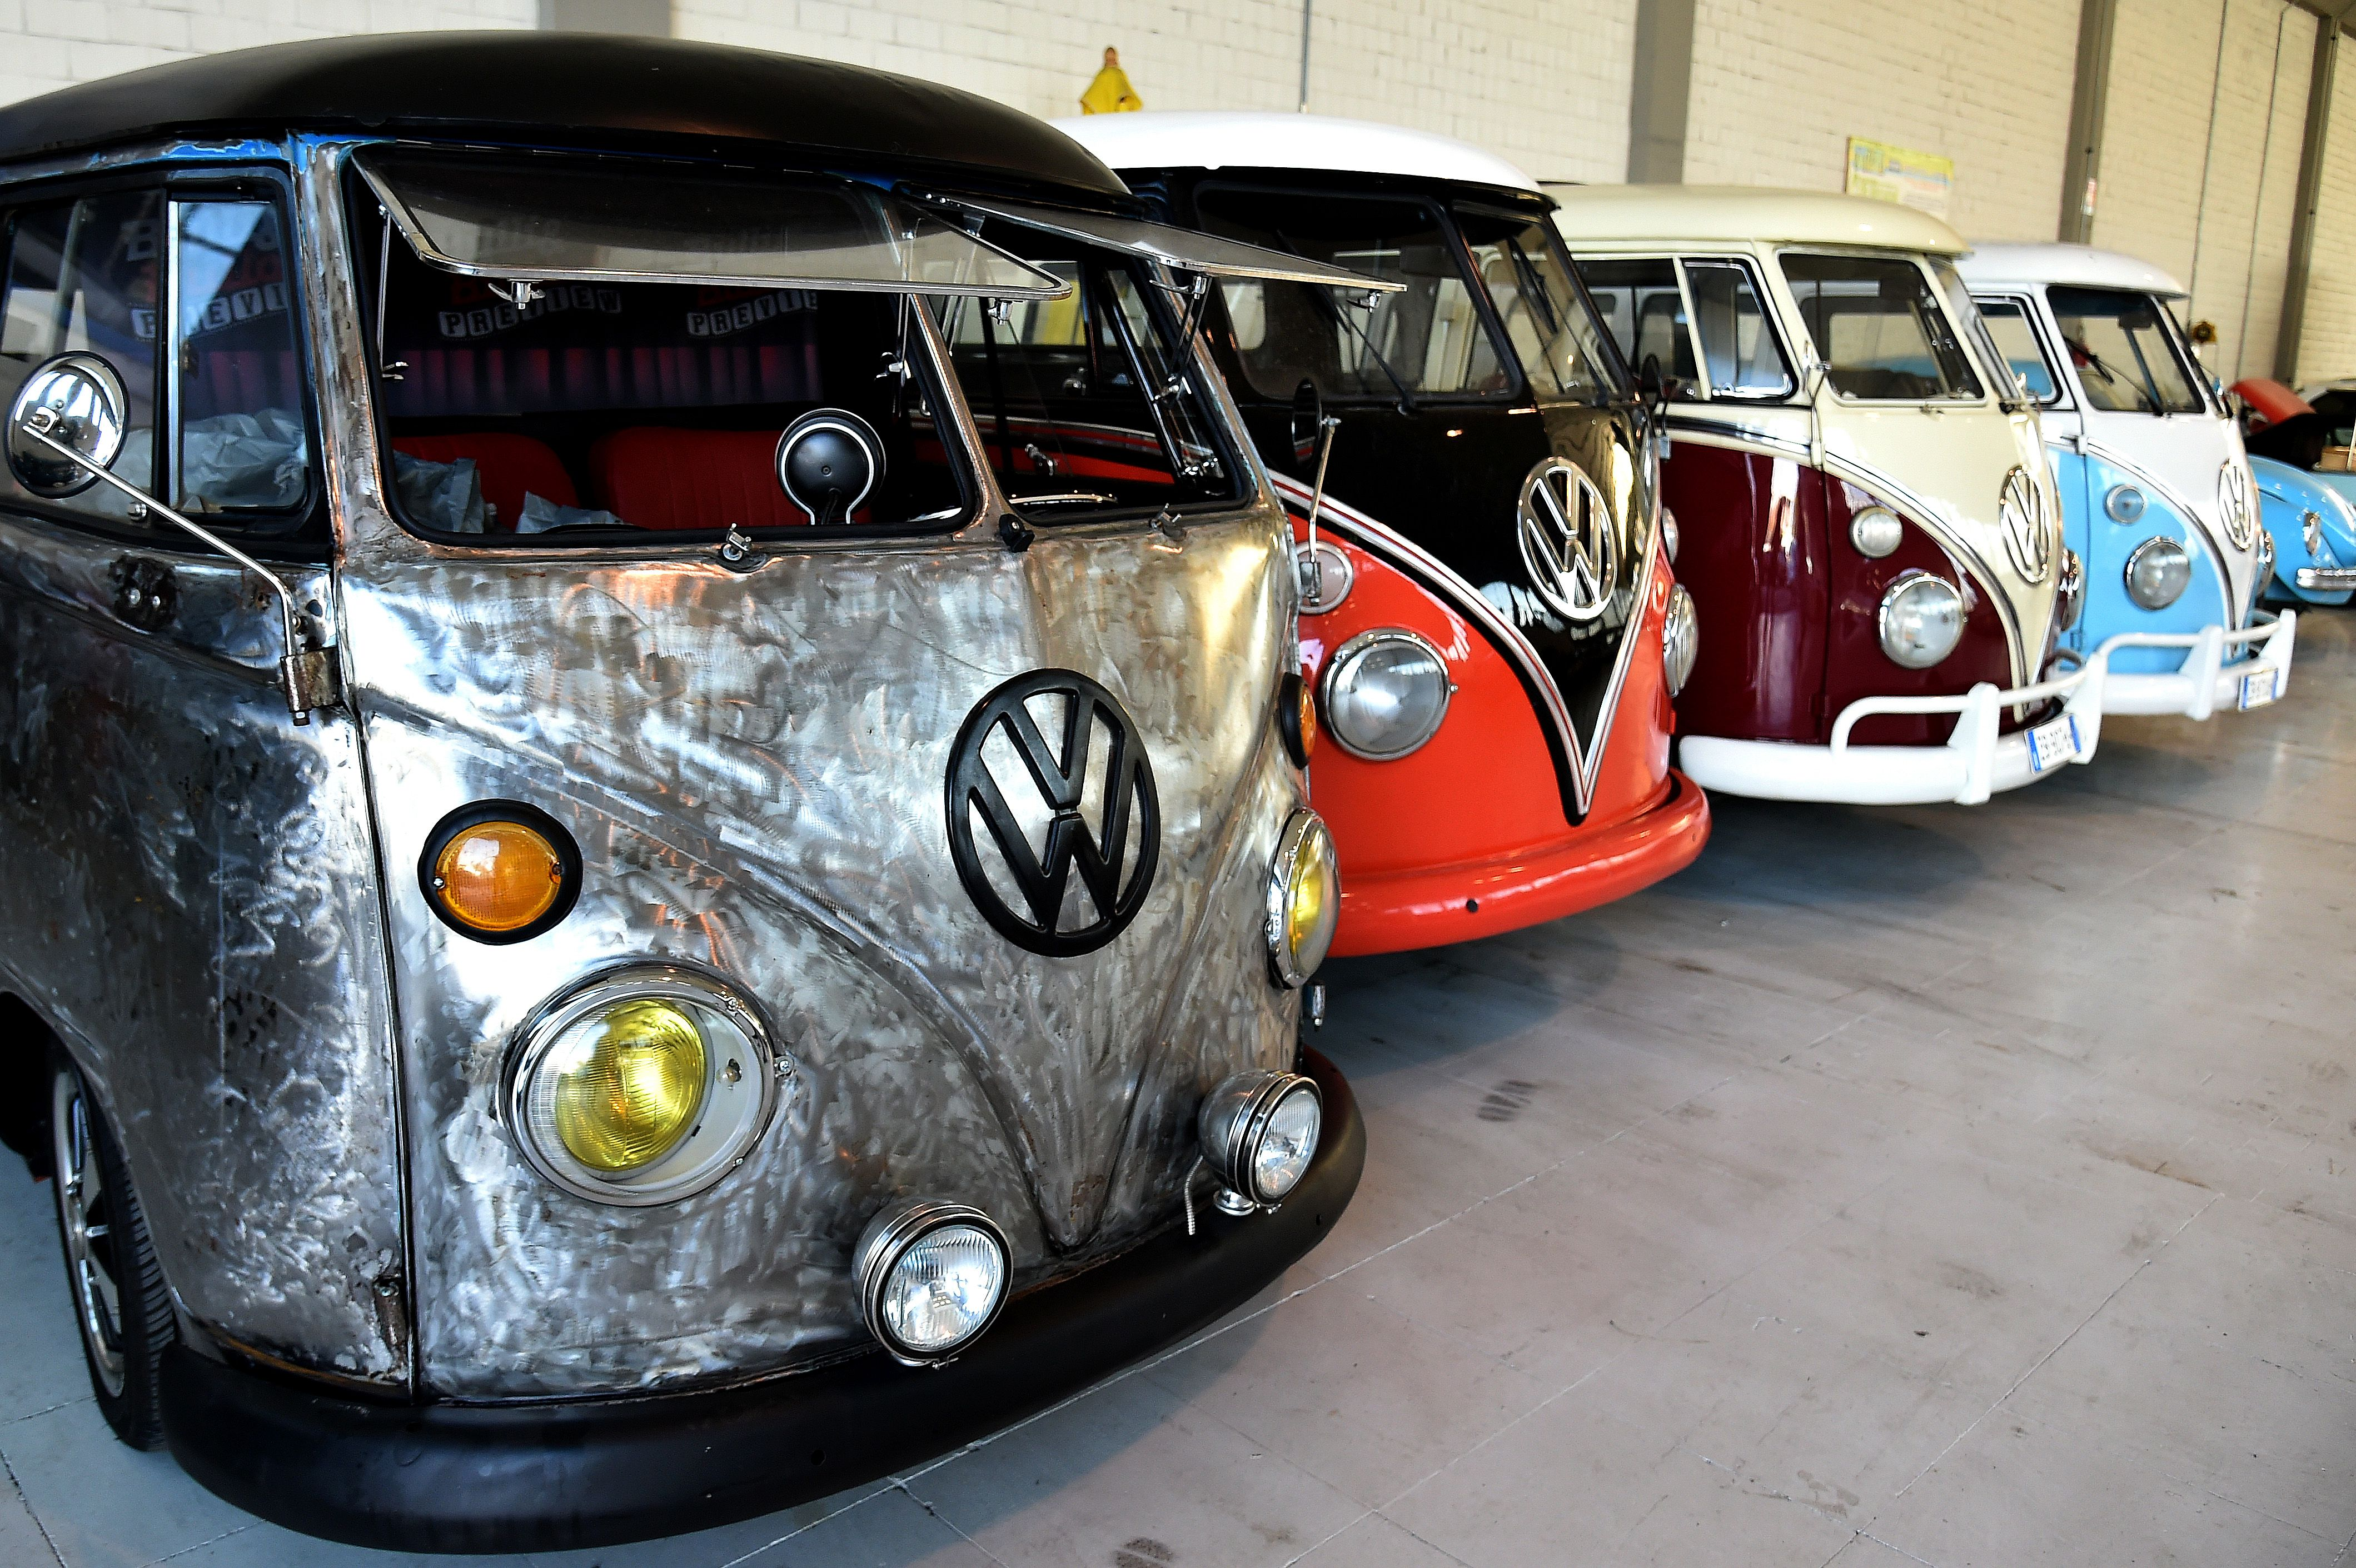 13b28a6a87 This Italian Company Restores Vintage Volkswagen Campers for Wealthy  Clients - InsideHook